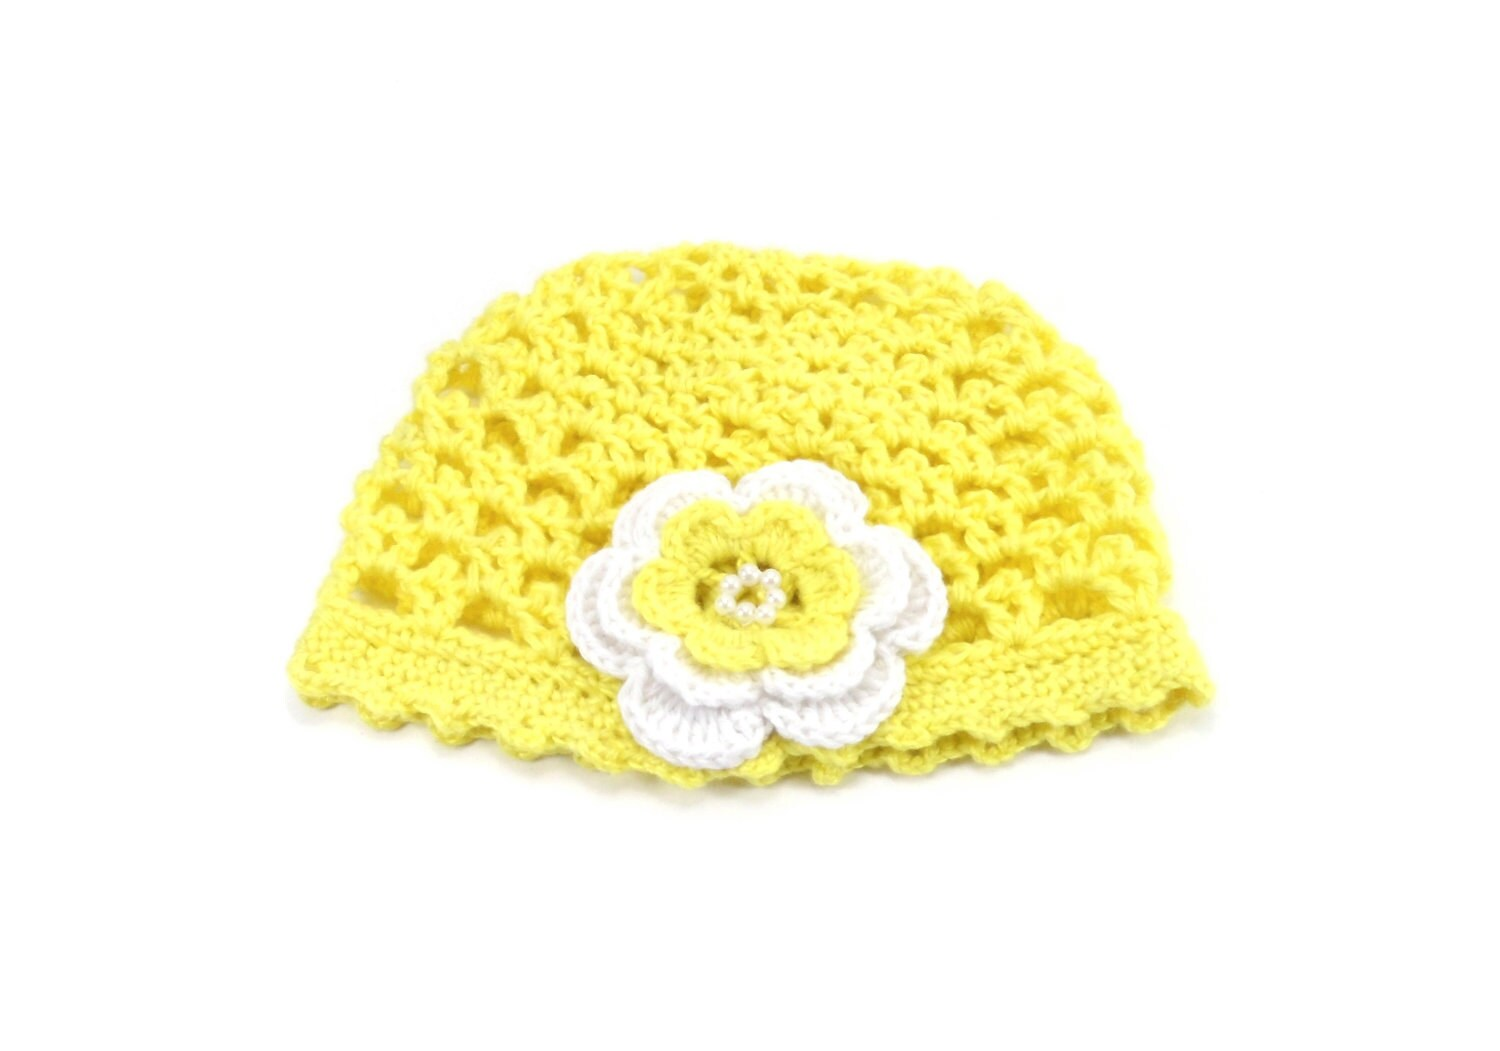 Crocheted Baby Hat with Flower - Yellow - SasasHandcrafts